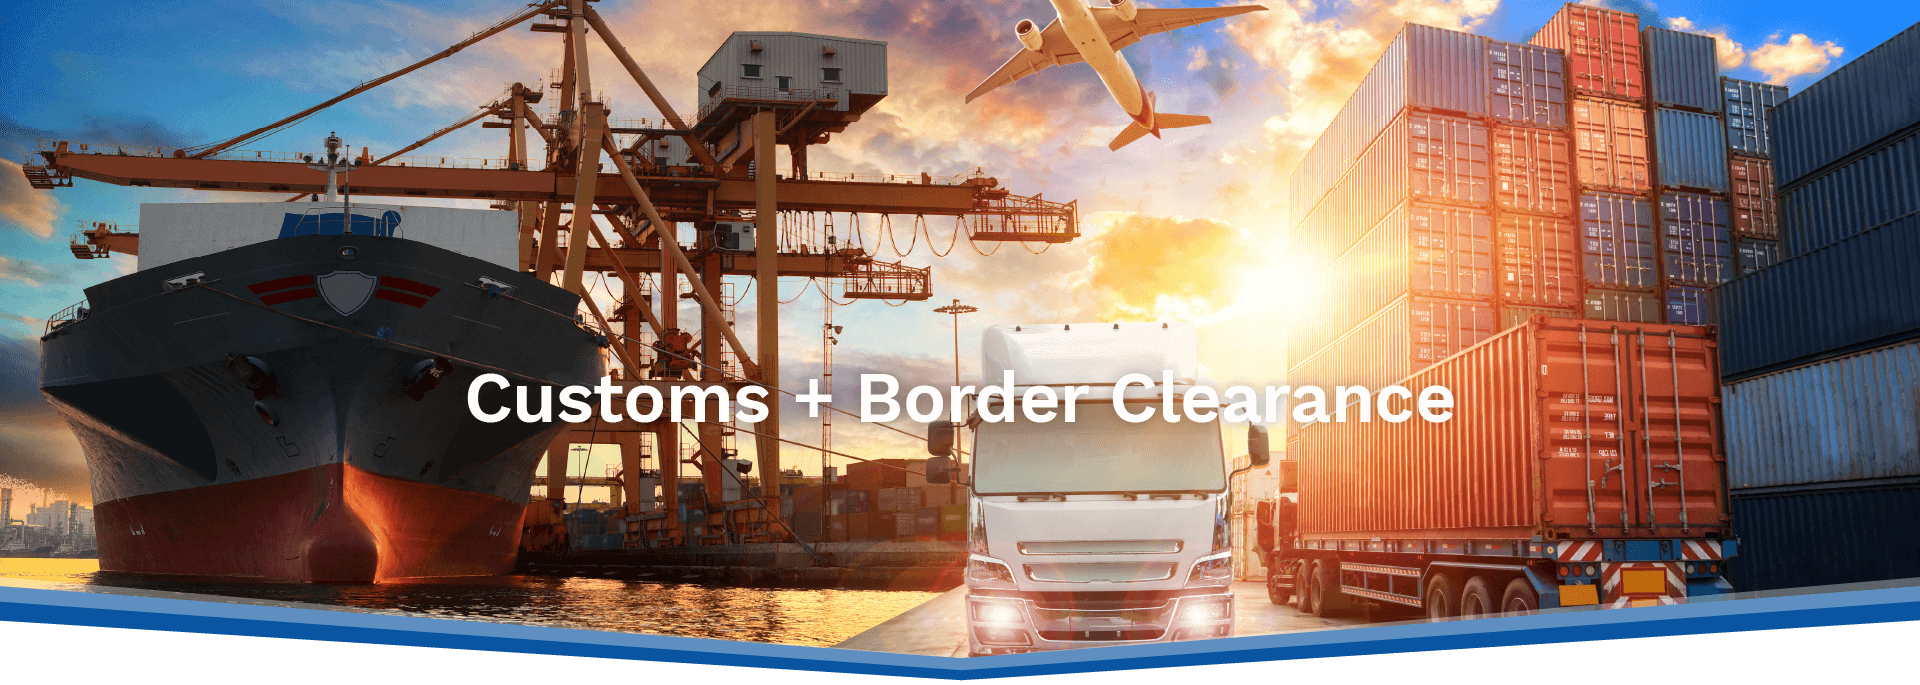 Customs and Border Clearance